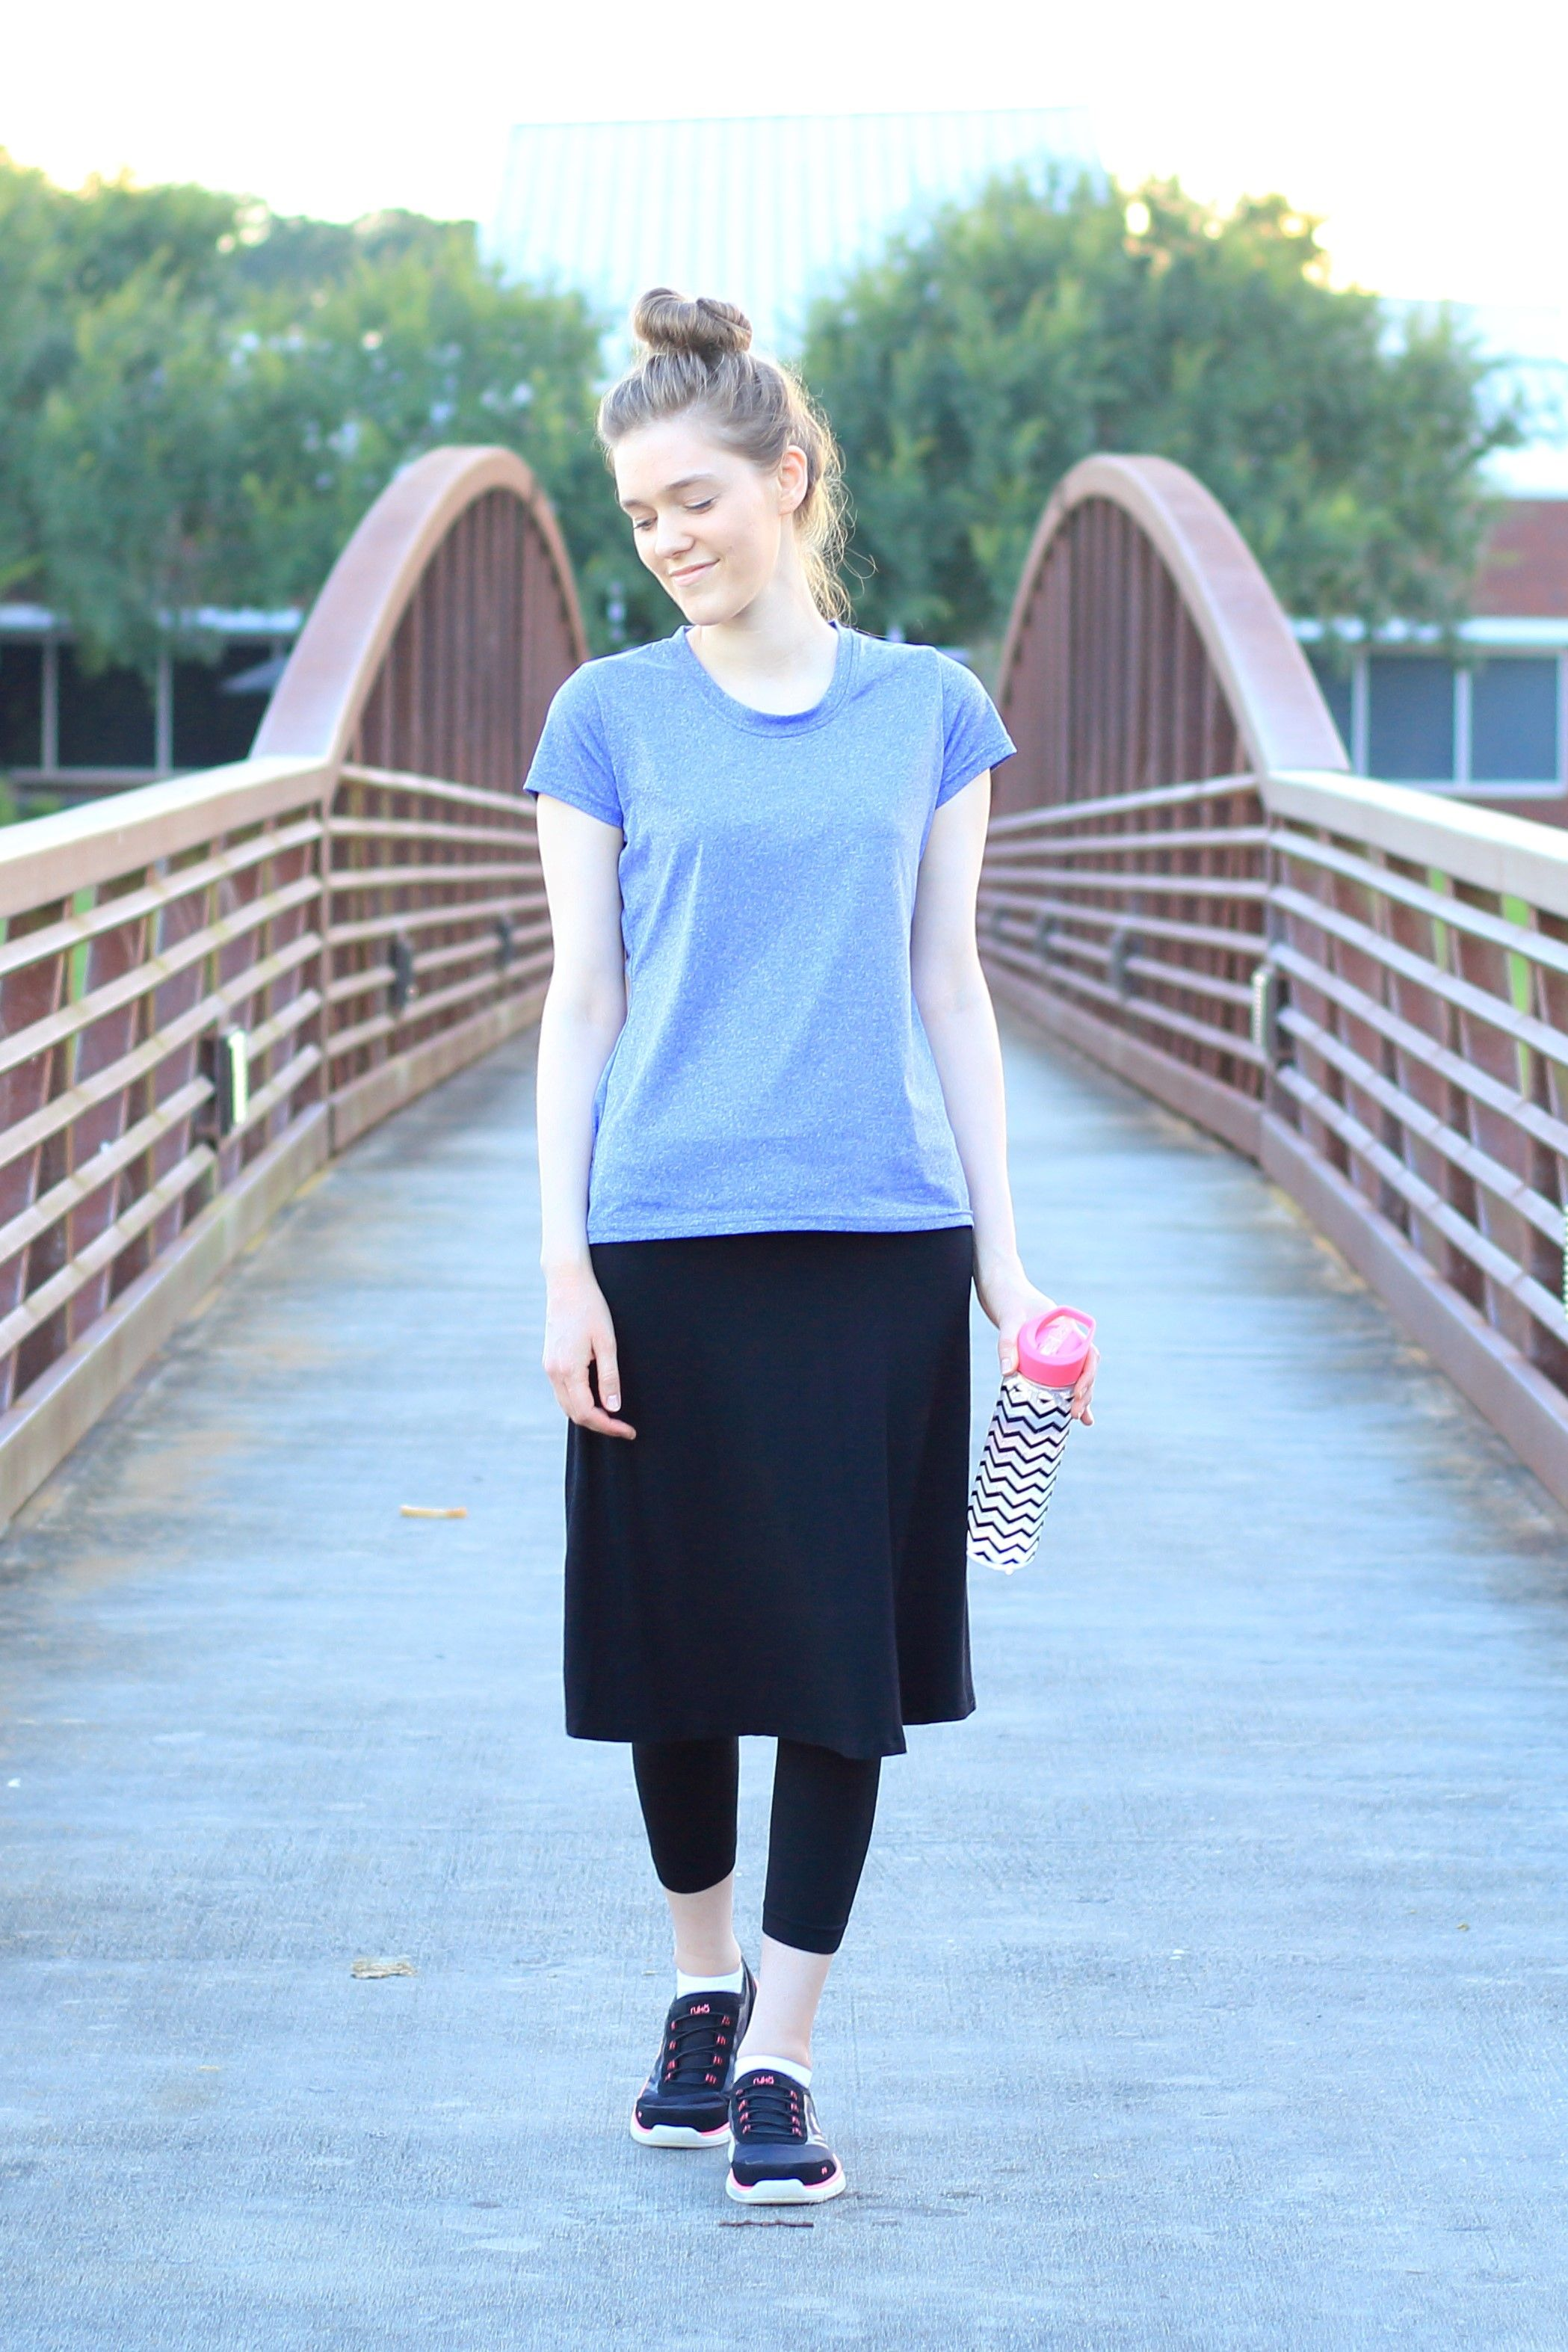 1f0d6ff9c825 Modest Workout Outfit Idea for Women  Purple Athletic Shirt  Black Skirt  Leggings  Tennis  Shoes  Activewear  Fitness  Spring Summer  Comfy  Easy  Simple